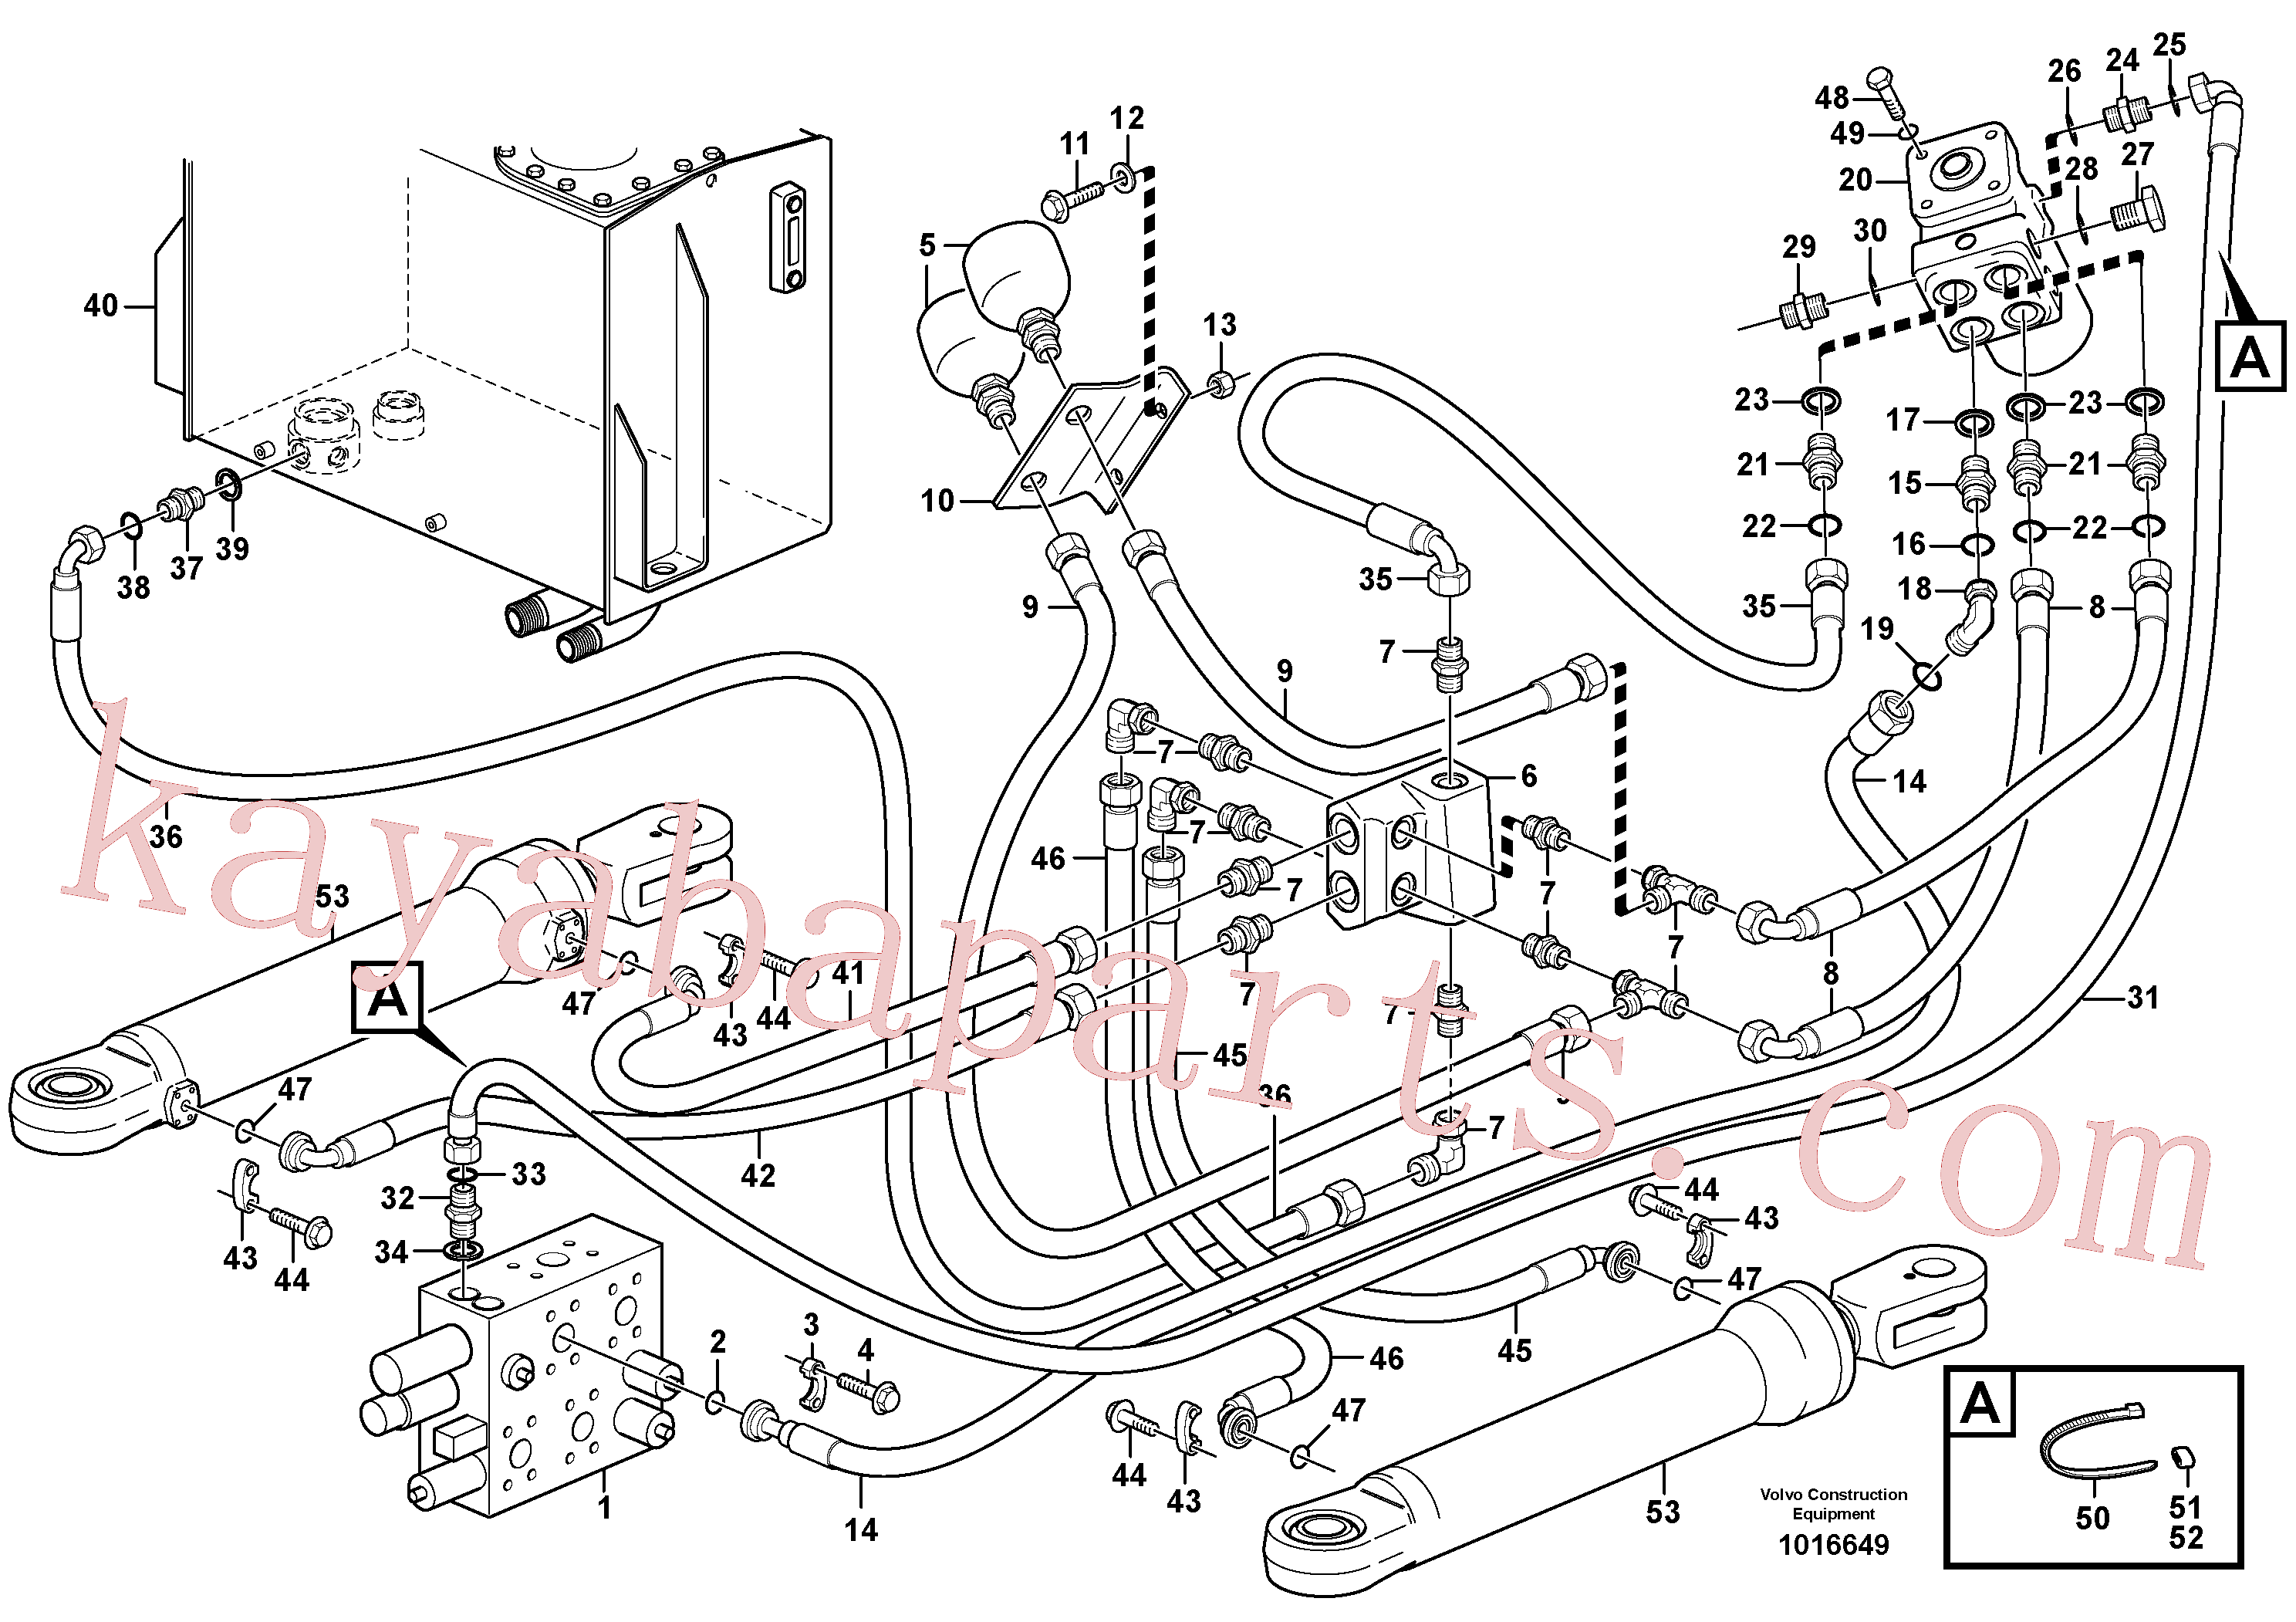 PJ4705008 for Volvo Steering system, pressure and return lines(1016649 assembly)